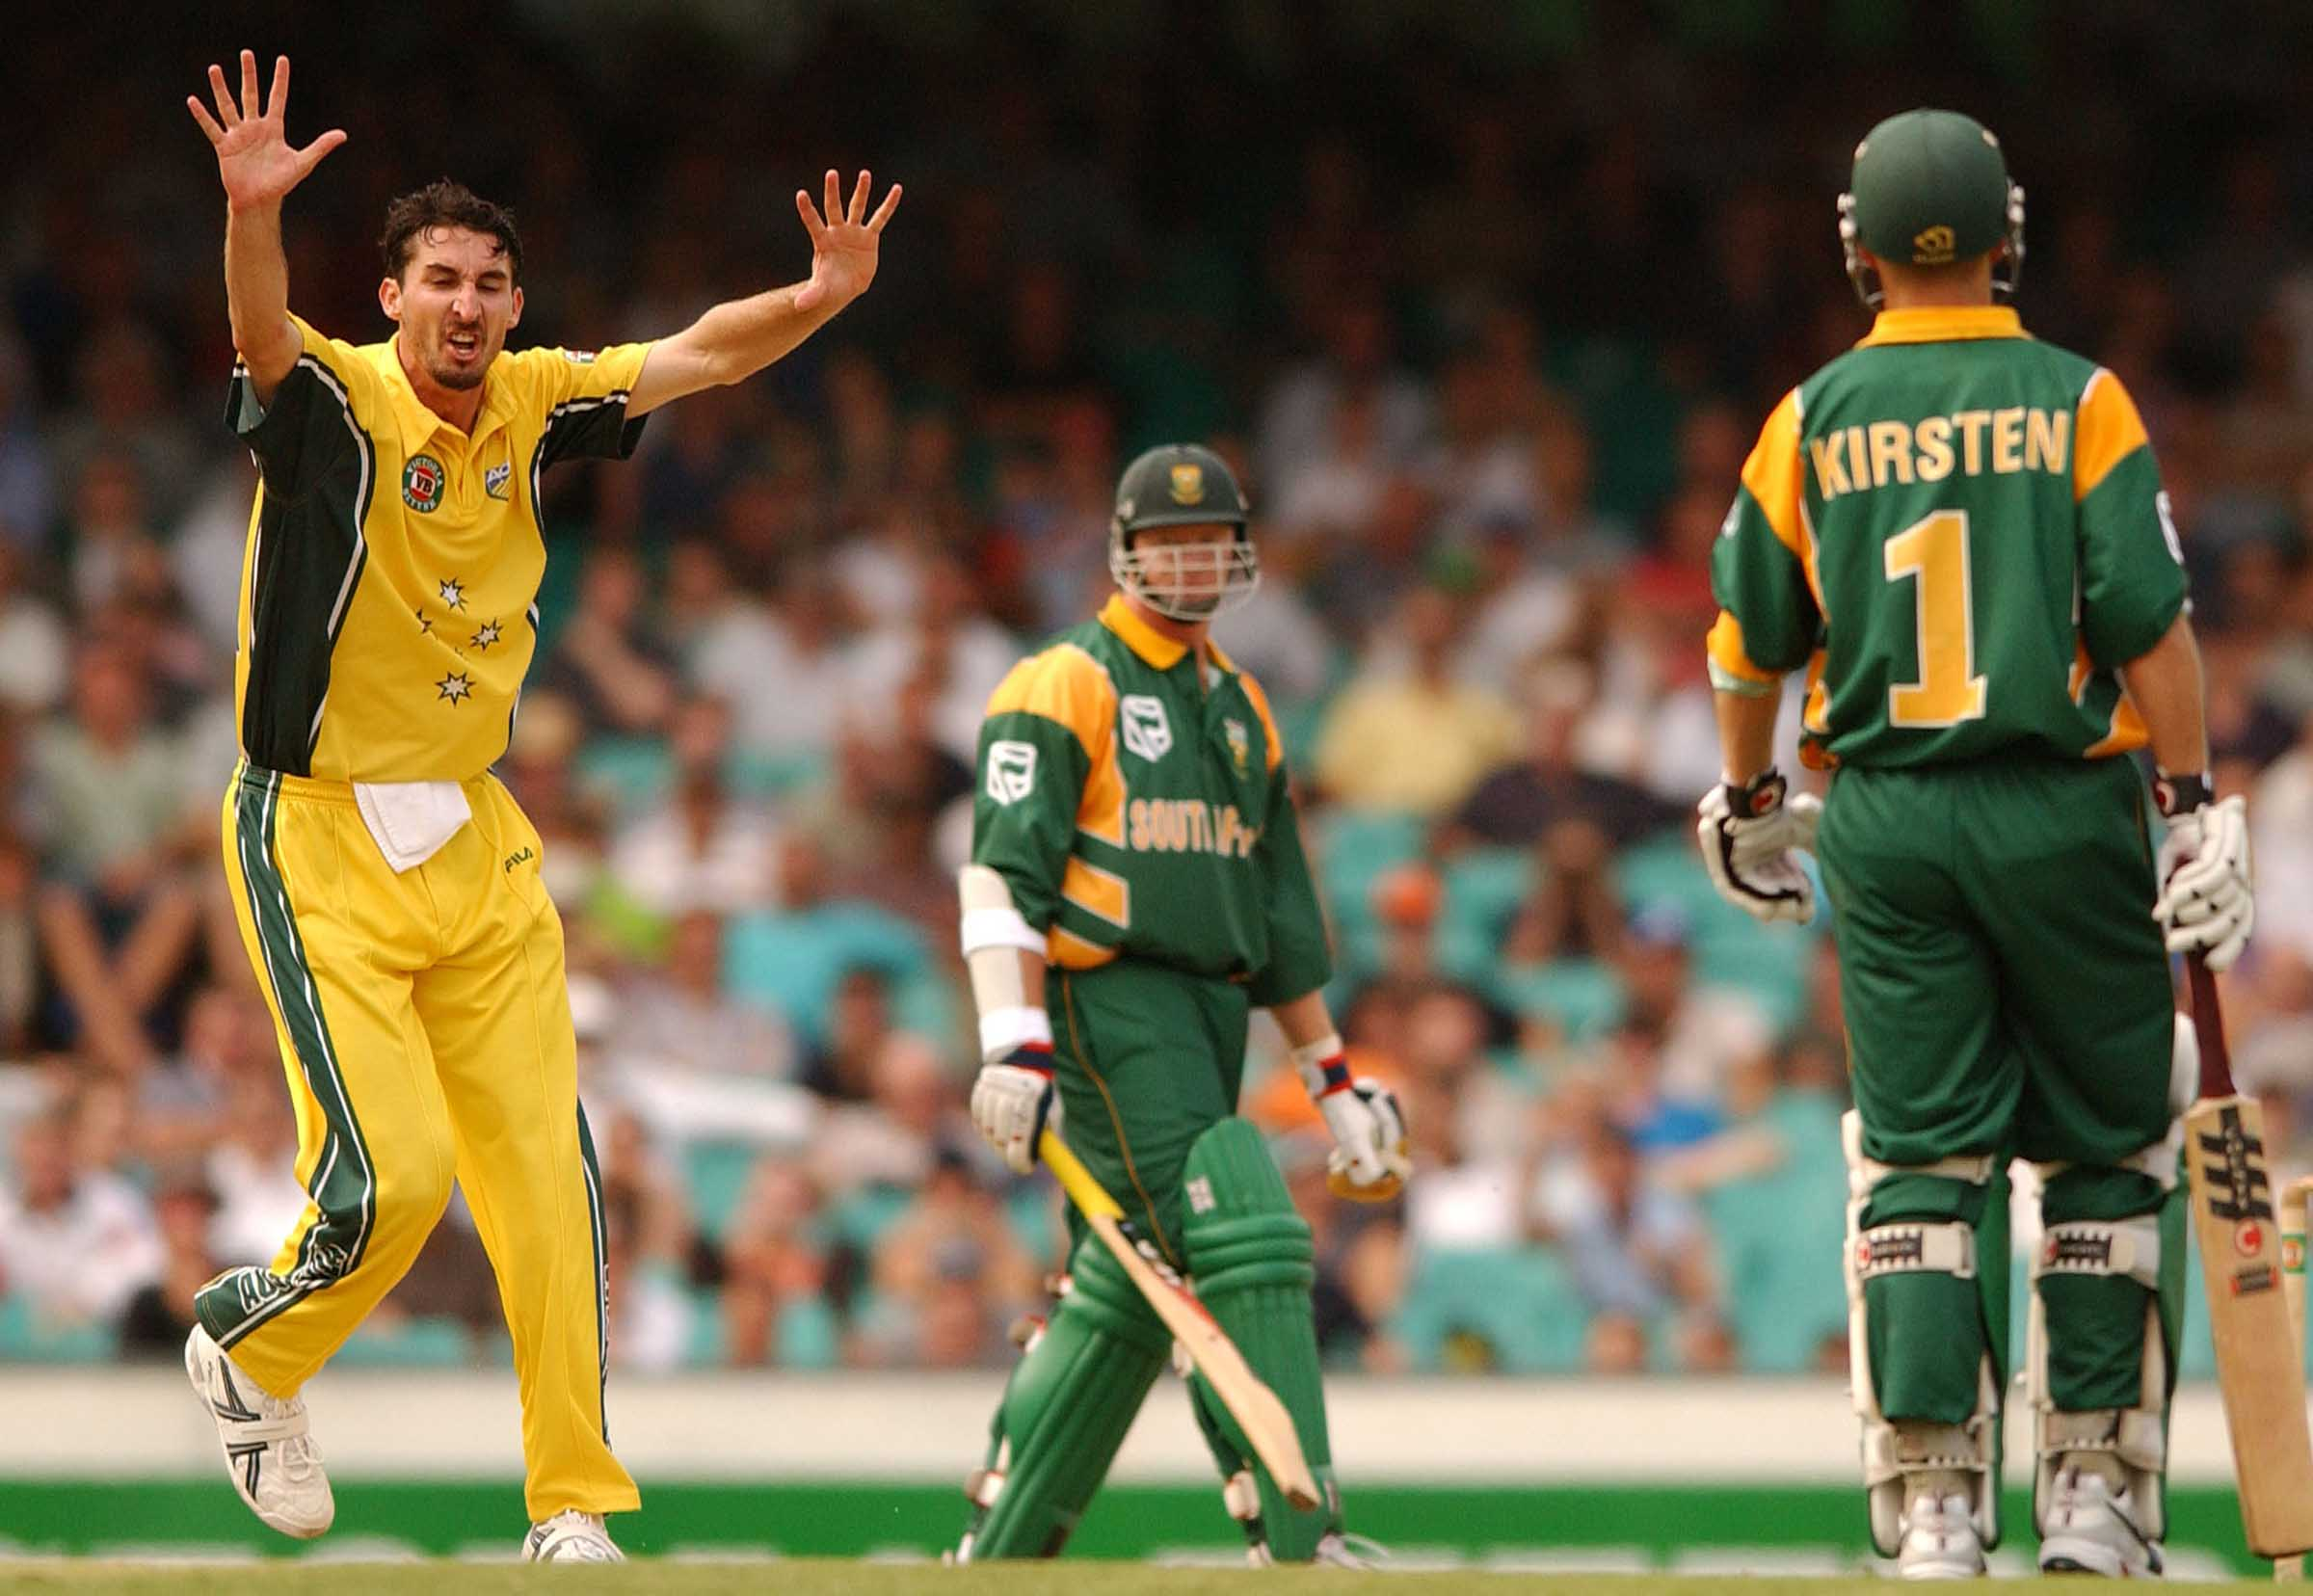 Jason Gillespie successfully crossed from Tests to ODIs in 2002 // Getty